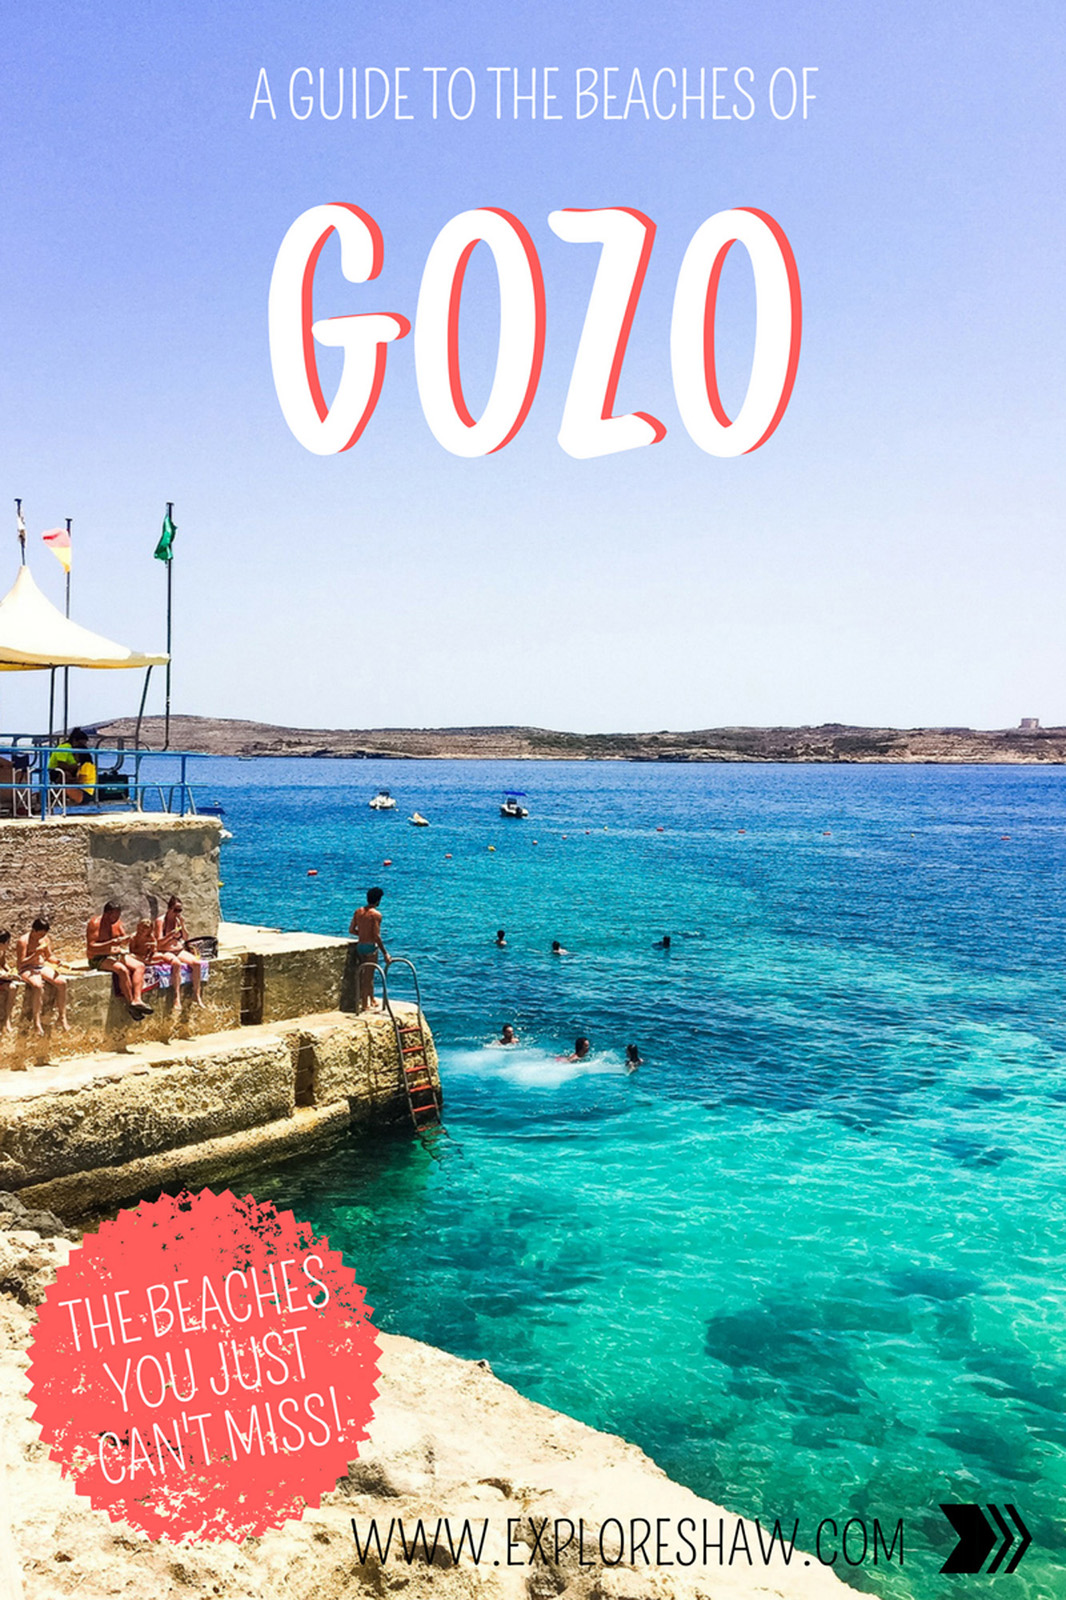 A GUIDE TO THE BEACHES OF GOZO